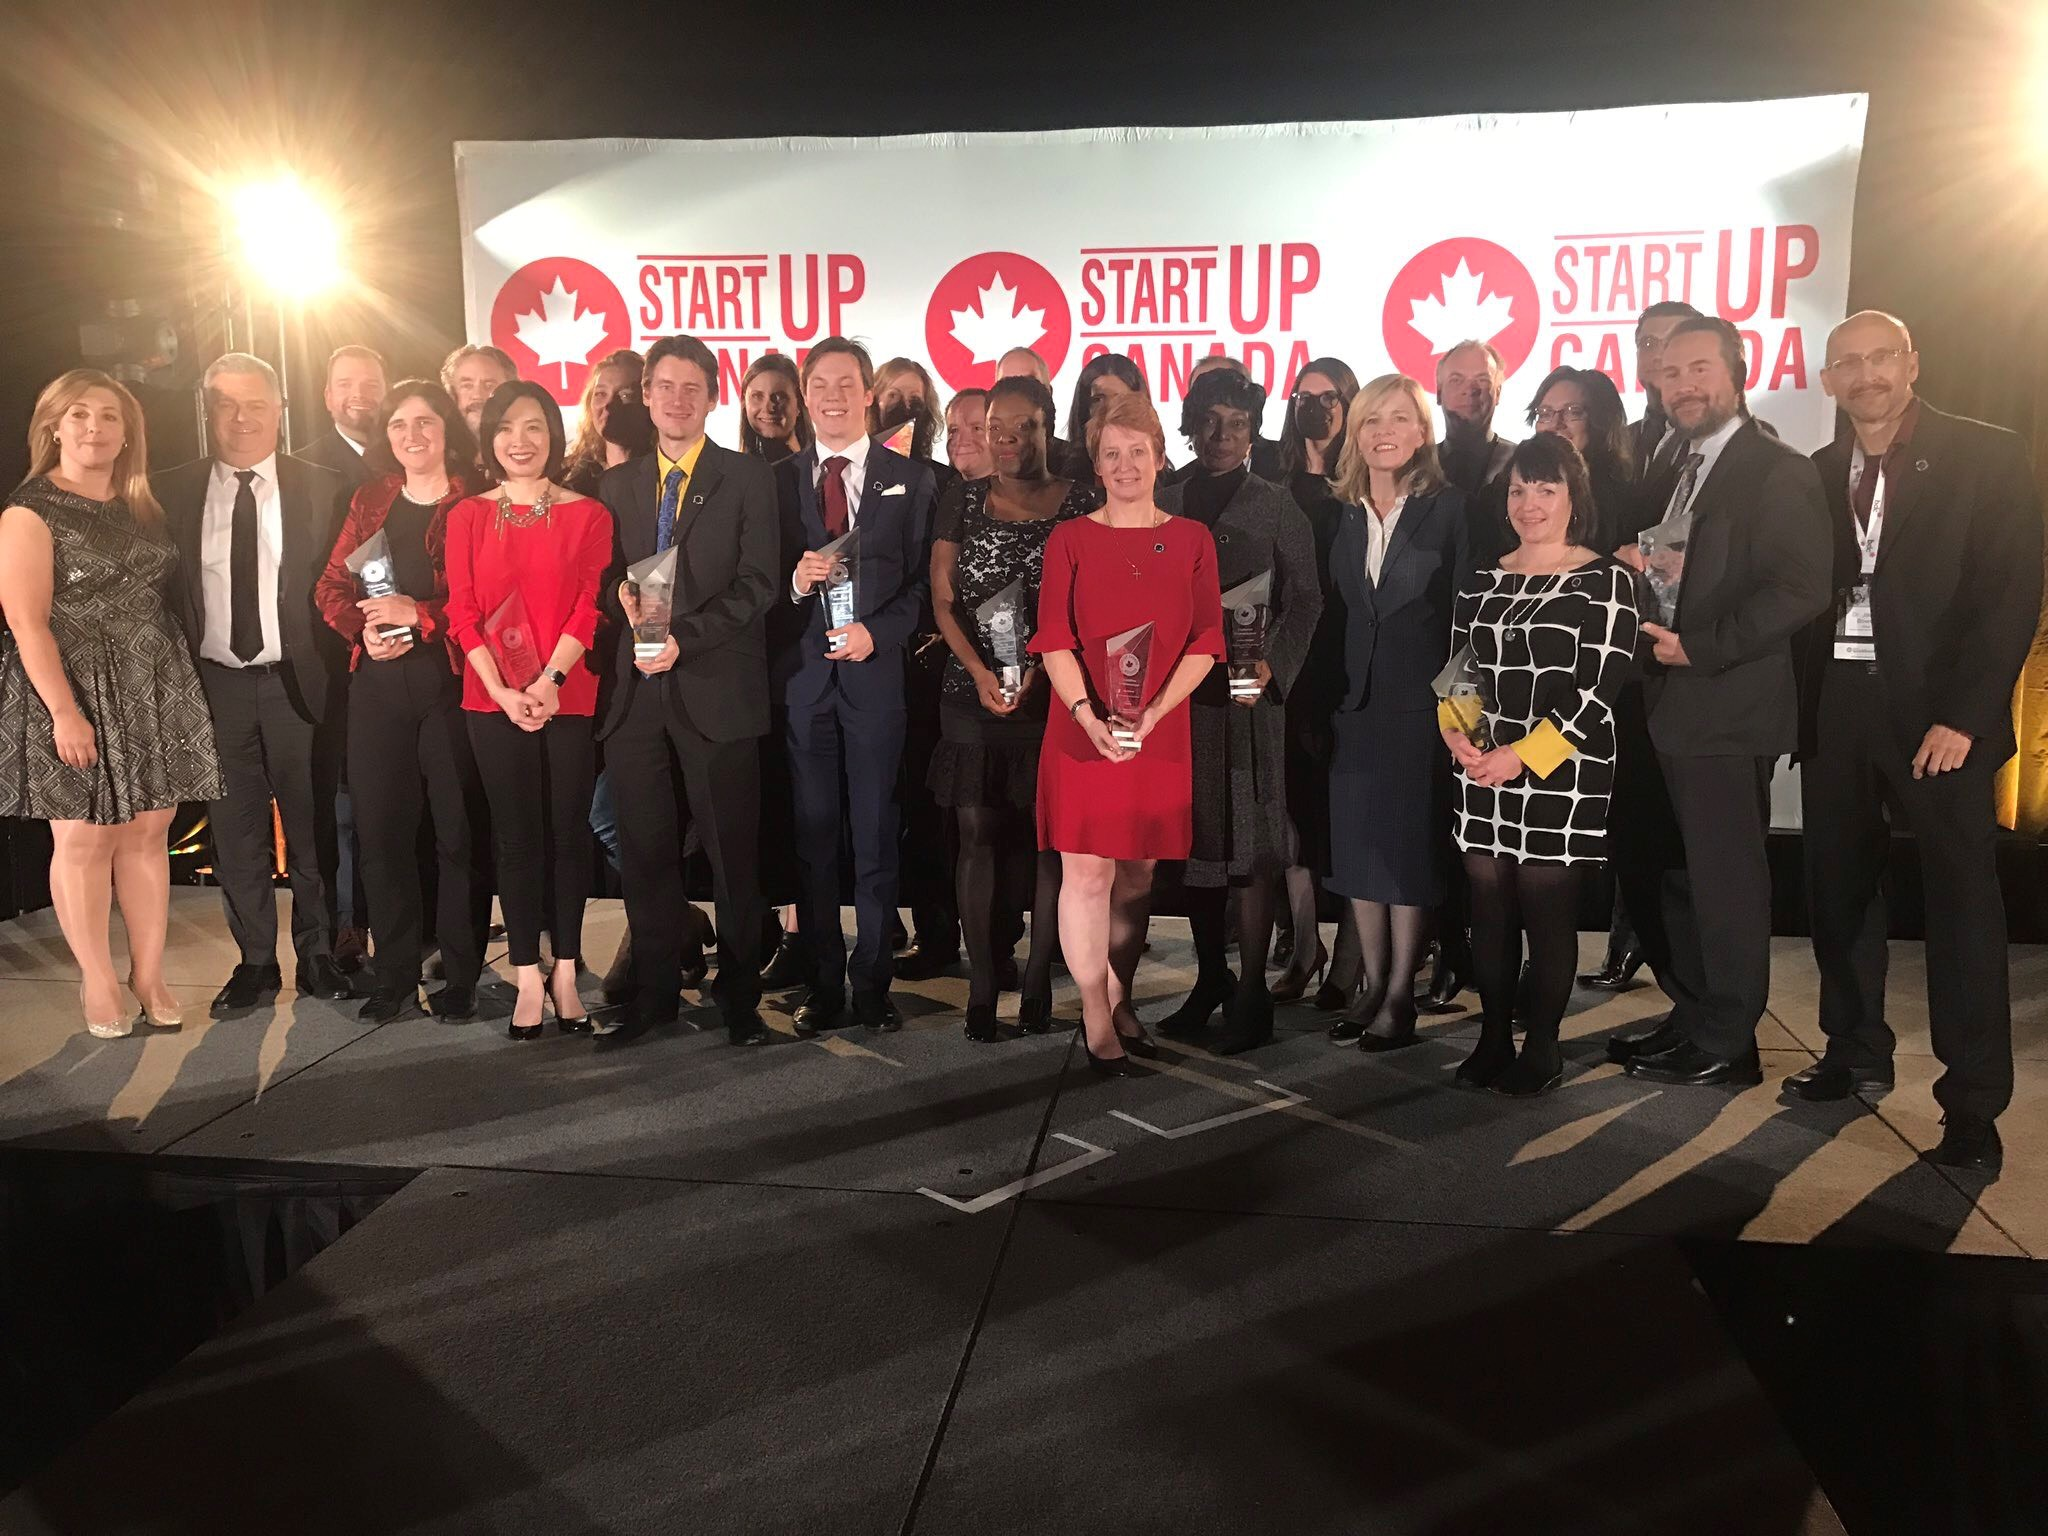 Photo: Startup Canada